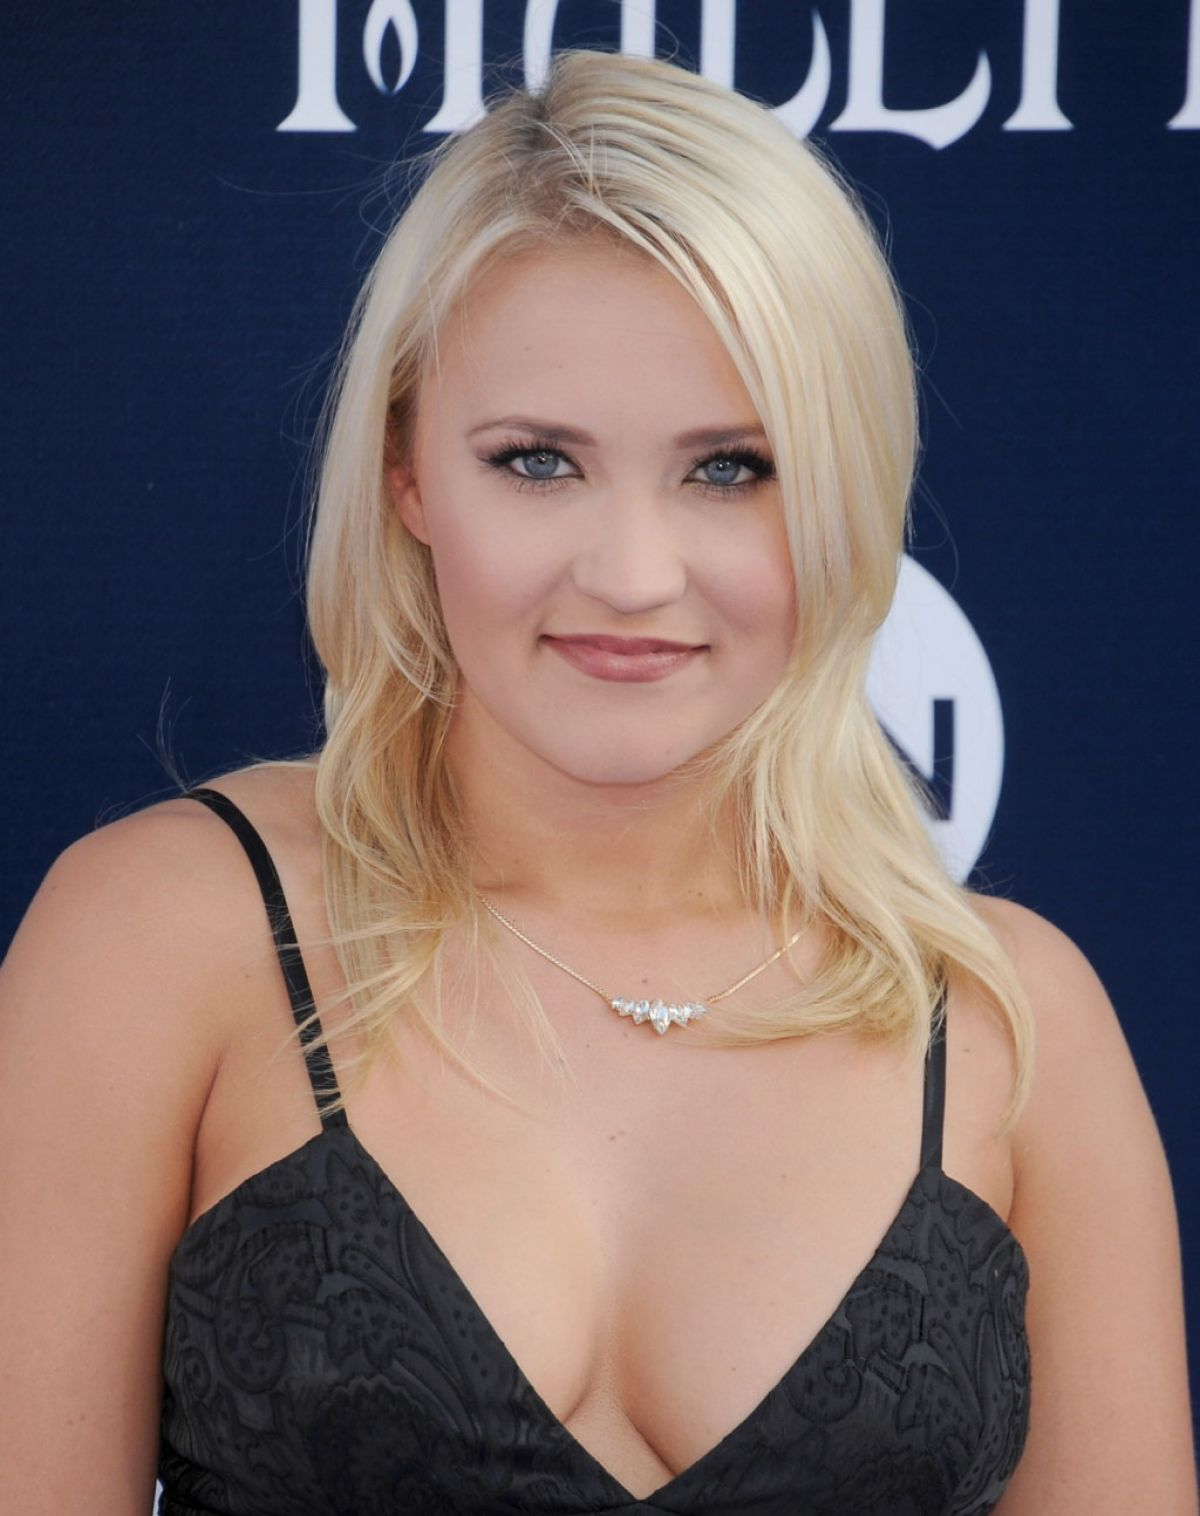 emily osment let's be friends